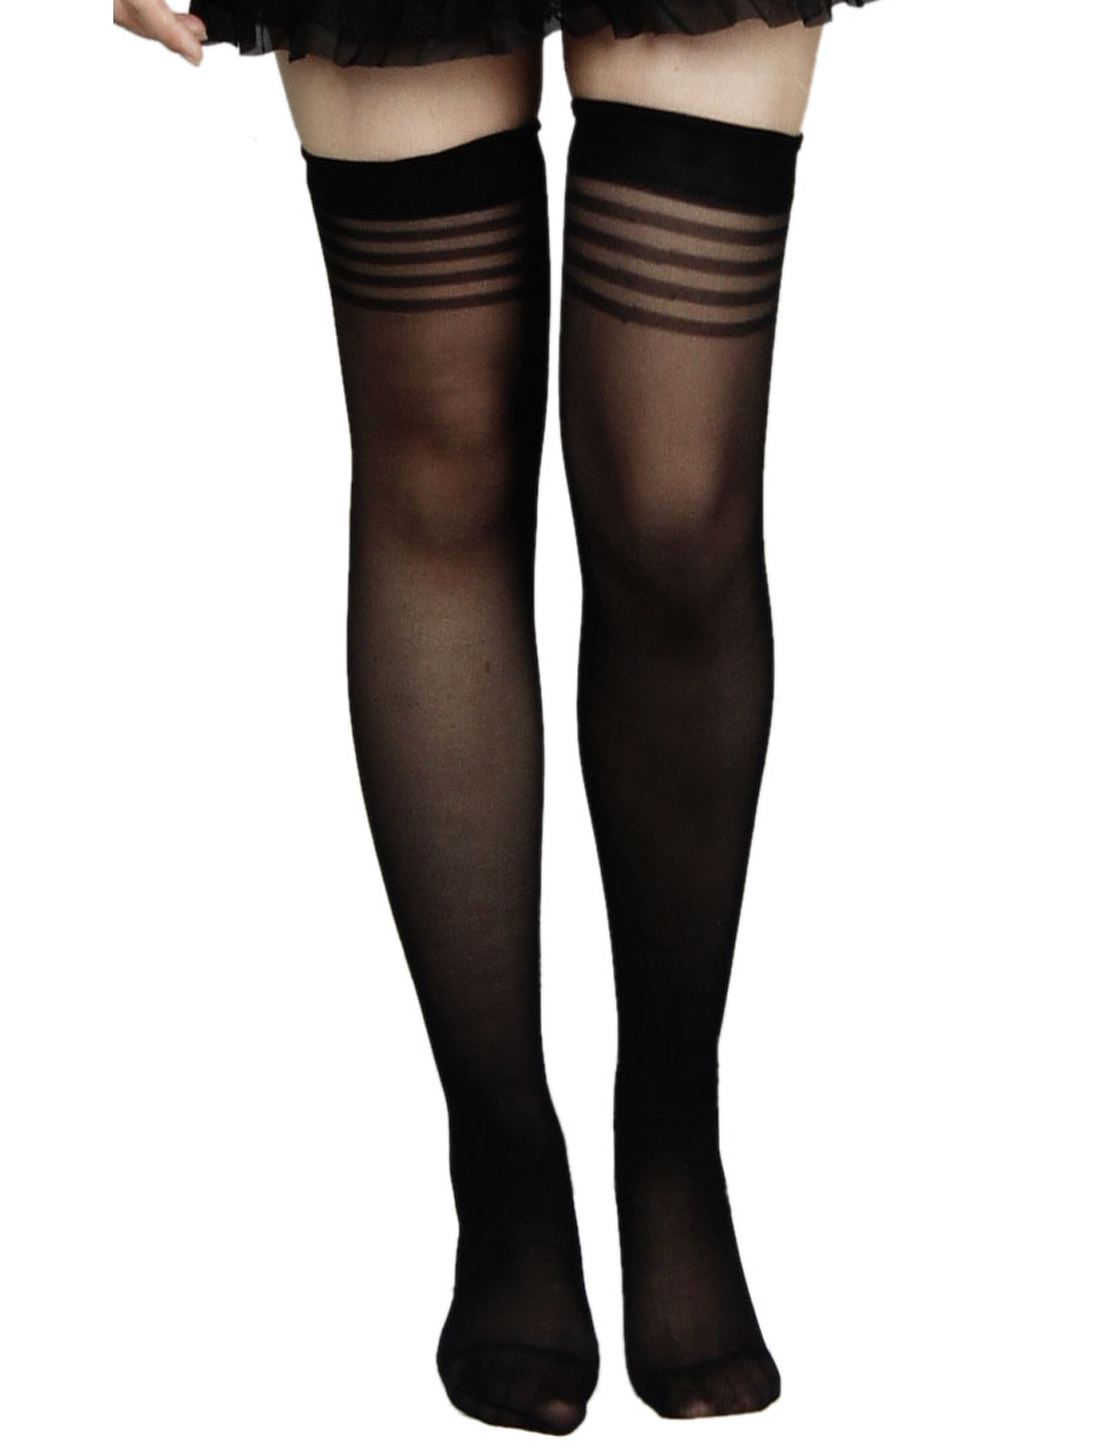 537173b8204 Woman Stretchy Sheer Sexy Thigh High Socks Stockings Black